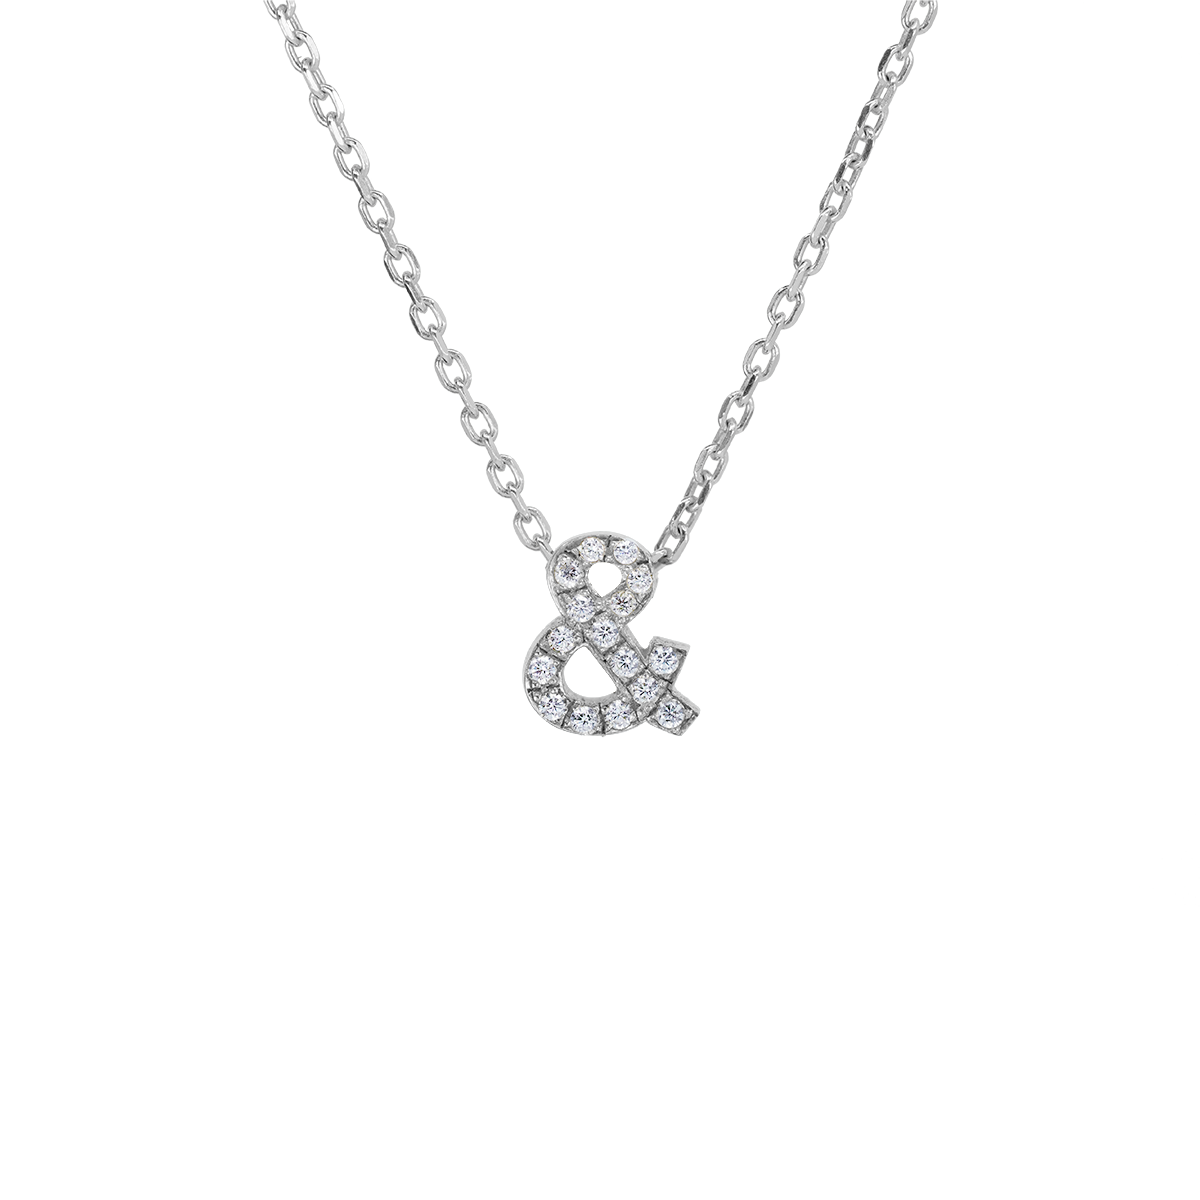 Initial pavé Necklace